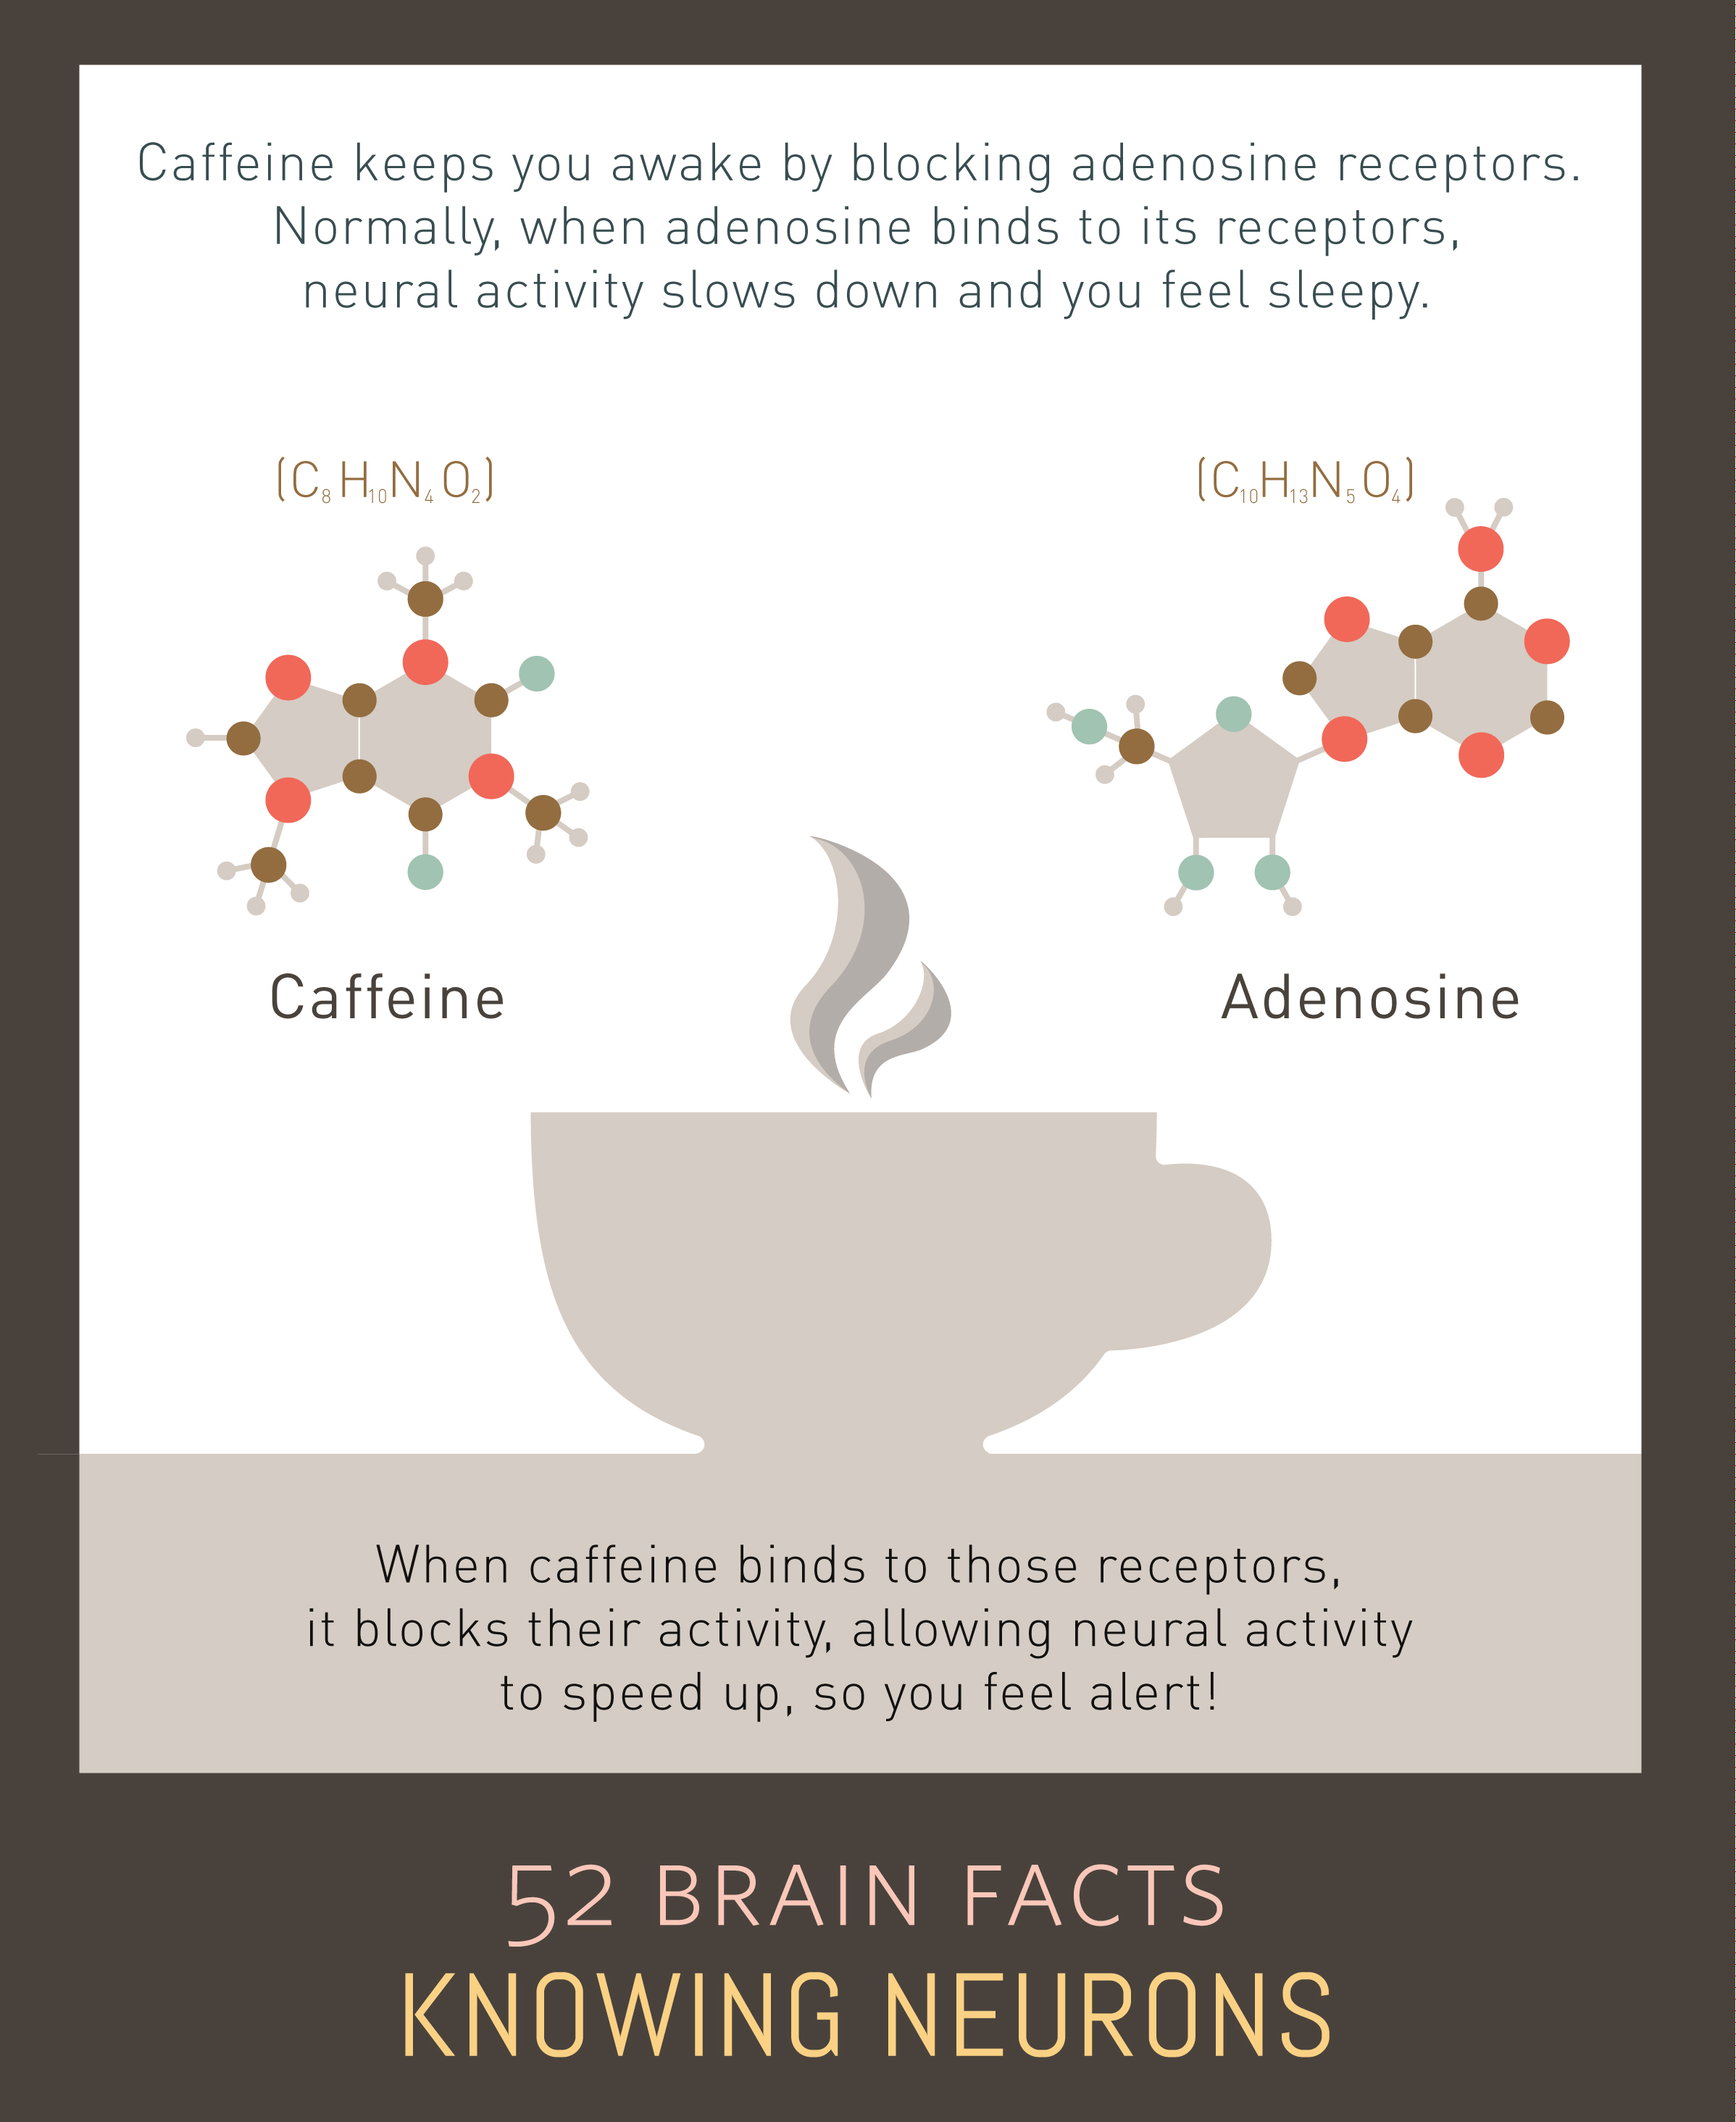 Myth or Fact? The mechanism by which caffeine keeps humans awake is a mystery